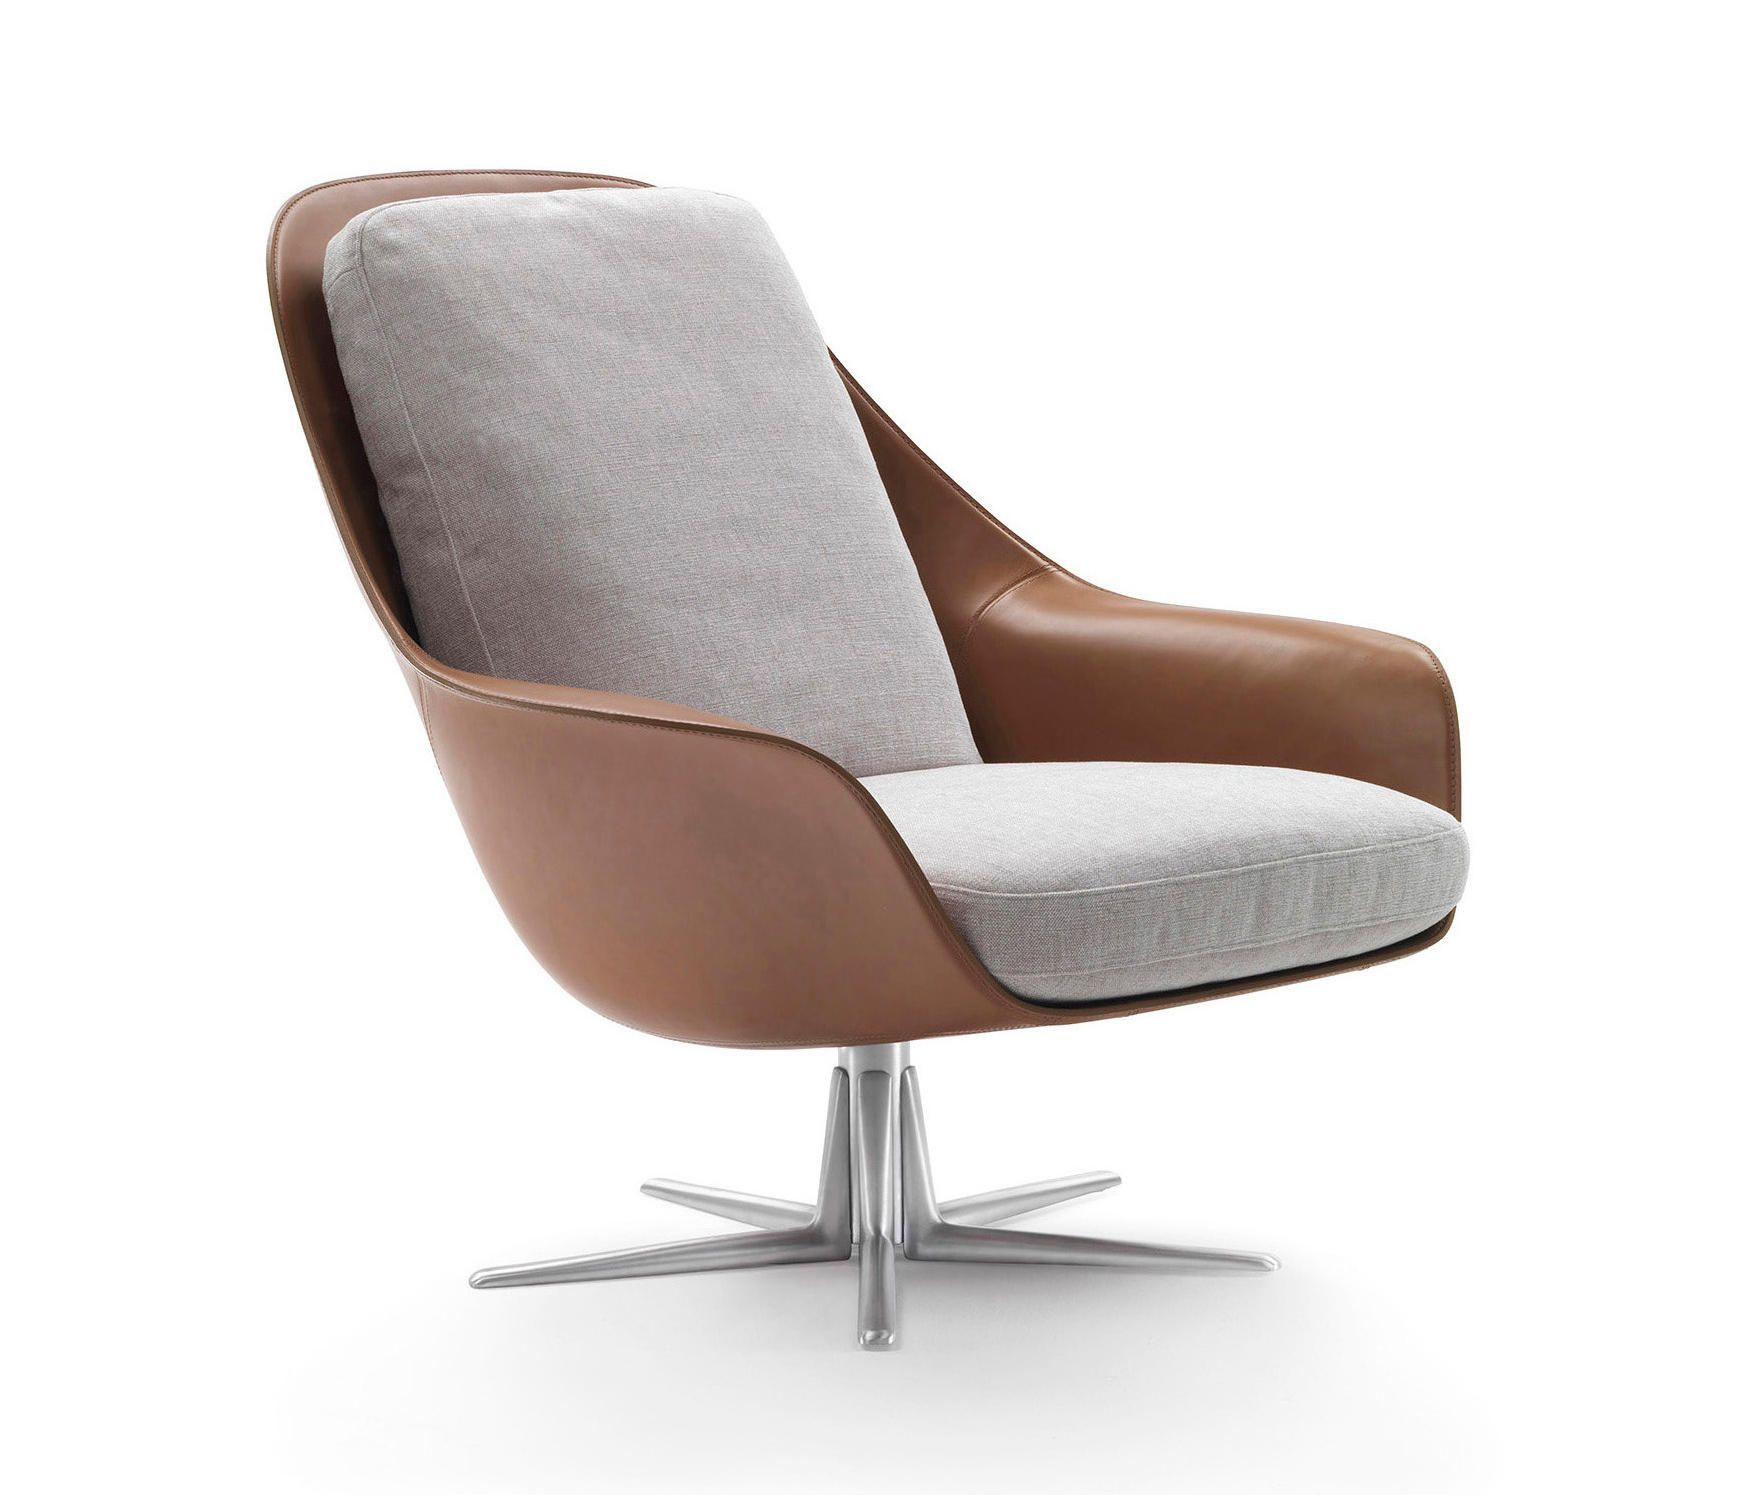 Flexform Sessel Sveva Armchair By Carlo Colombo For Flexform Armchairs Chaises